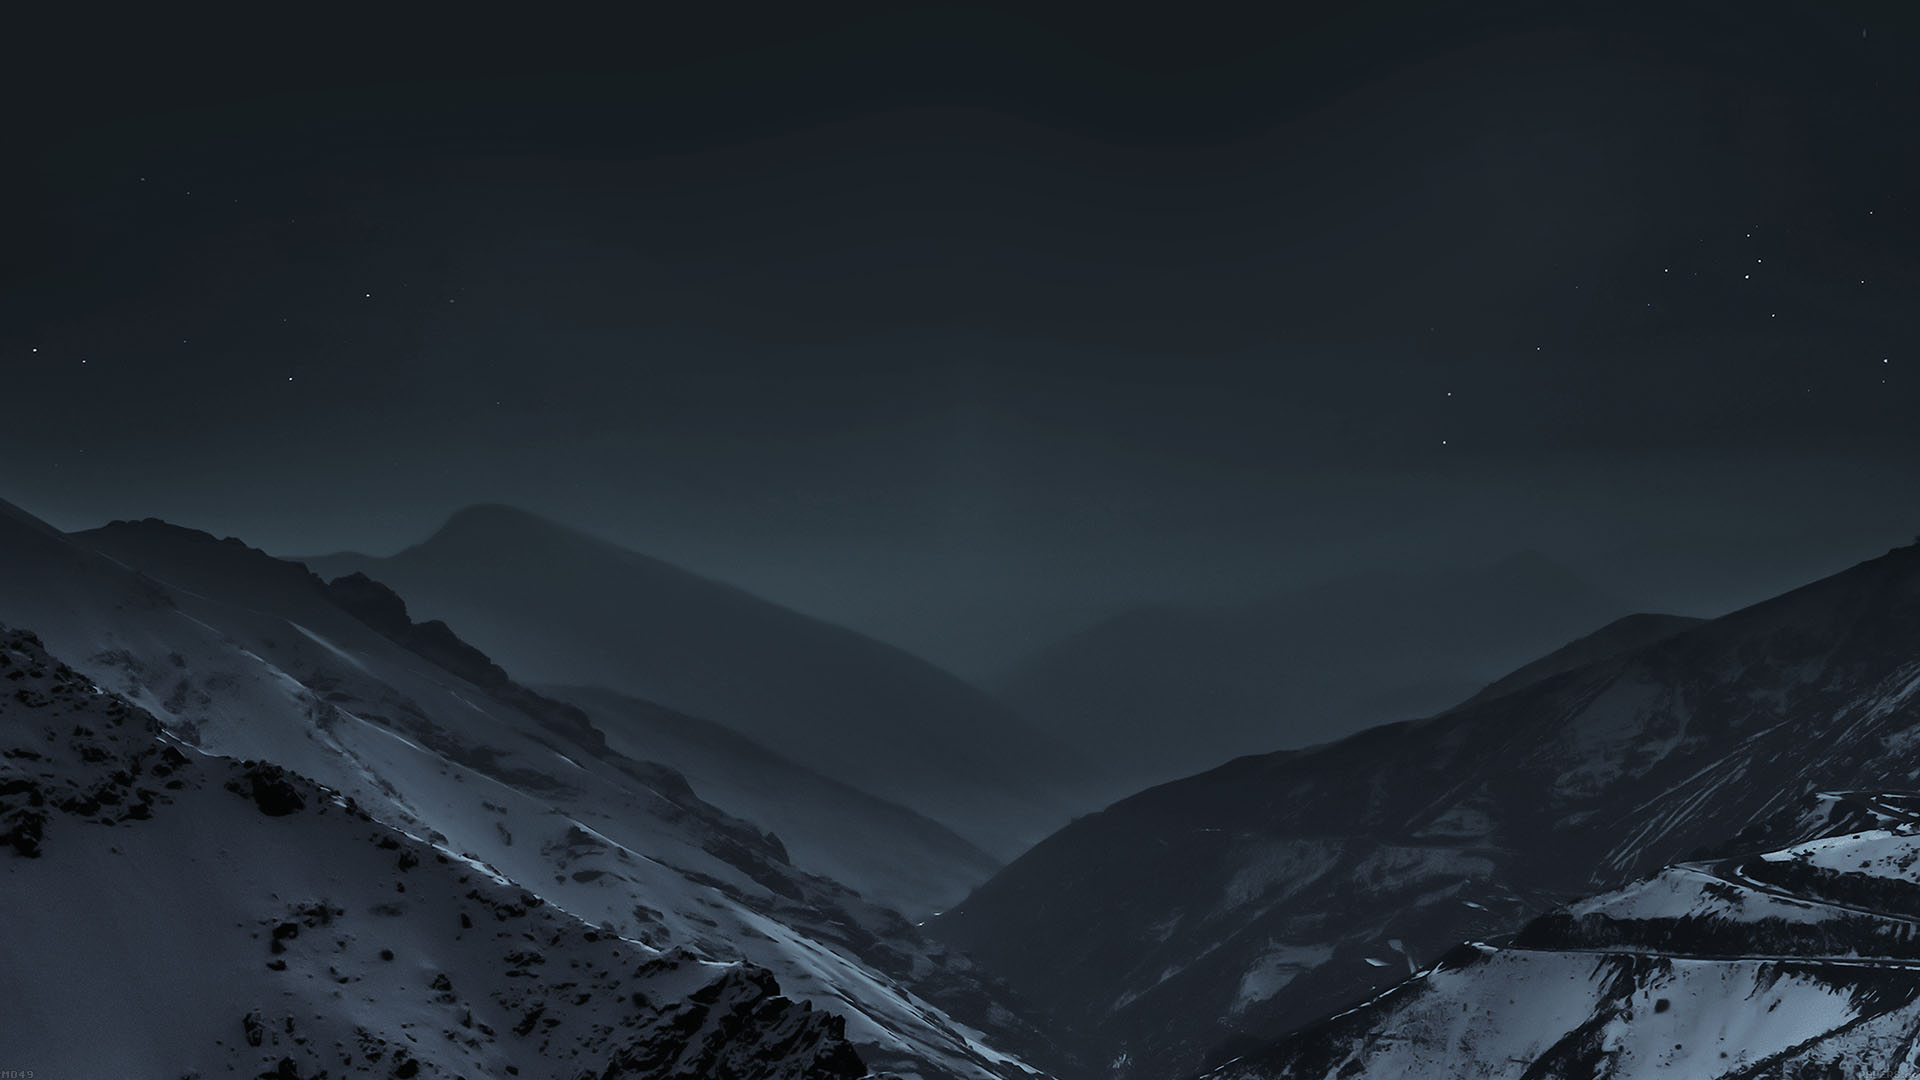 md49wallpapernatureearthdarkasleepmountainnight